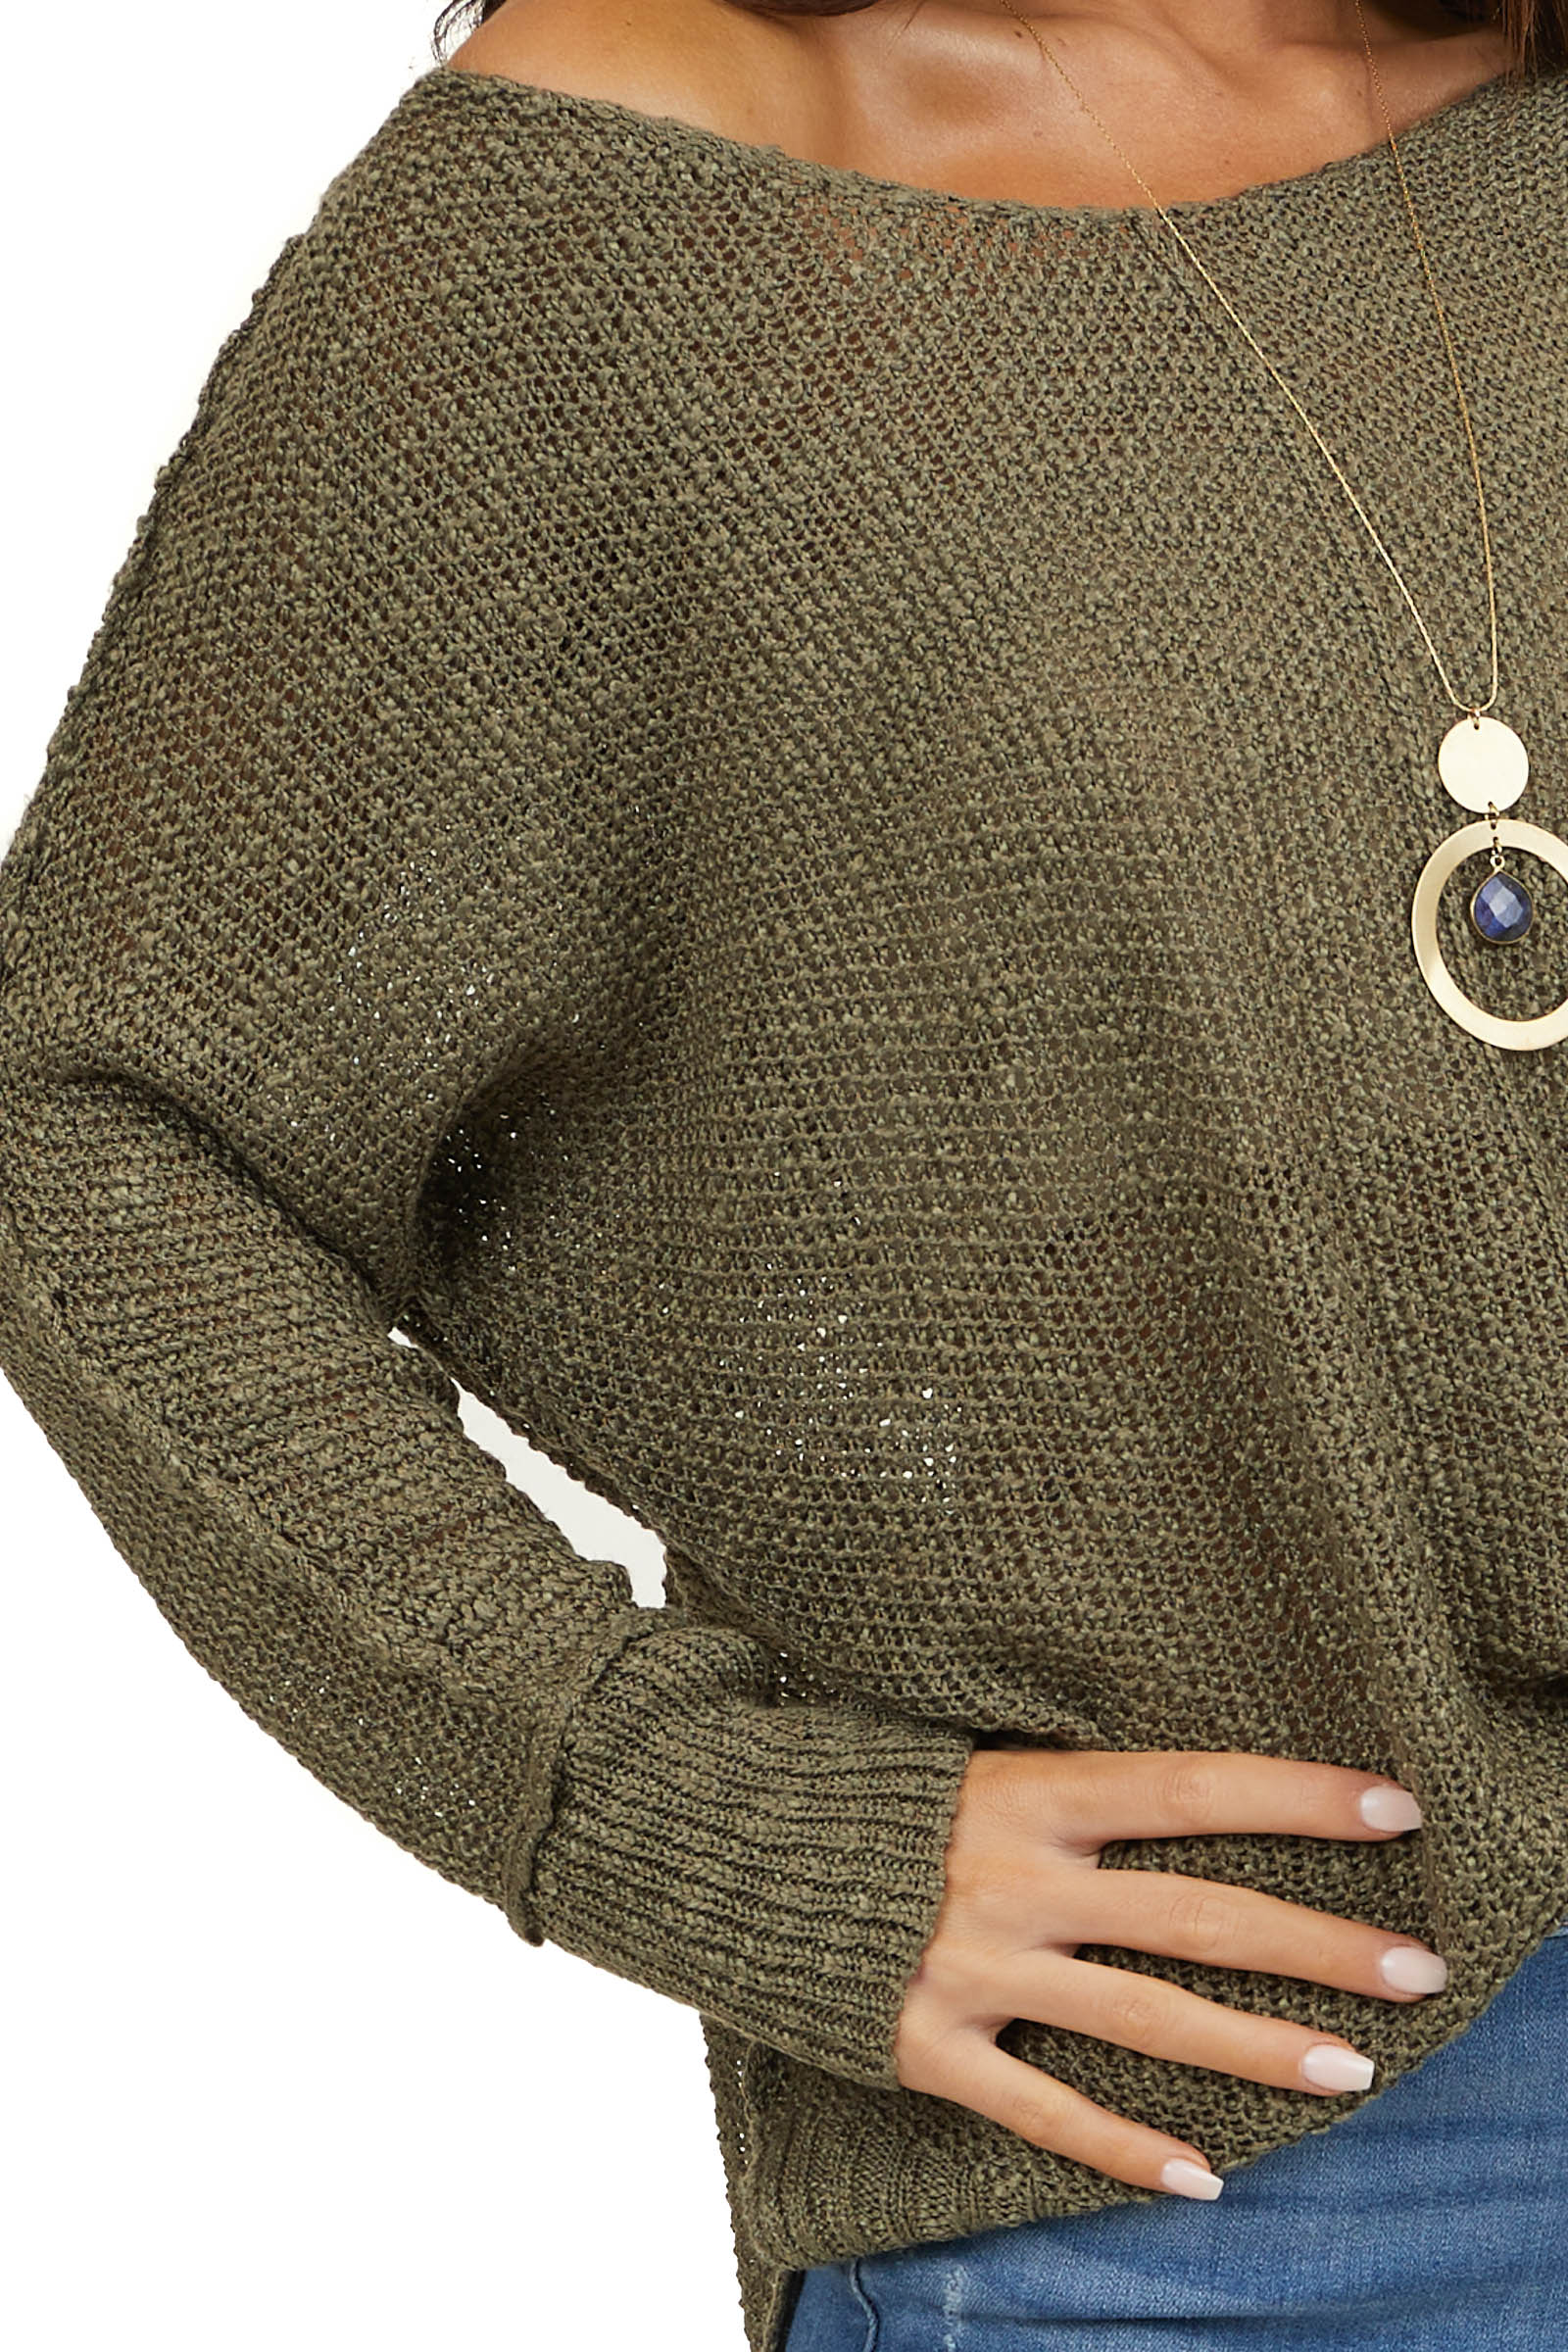 Dusty Olive Knit Lightweight Sweater with Long Sleeves